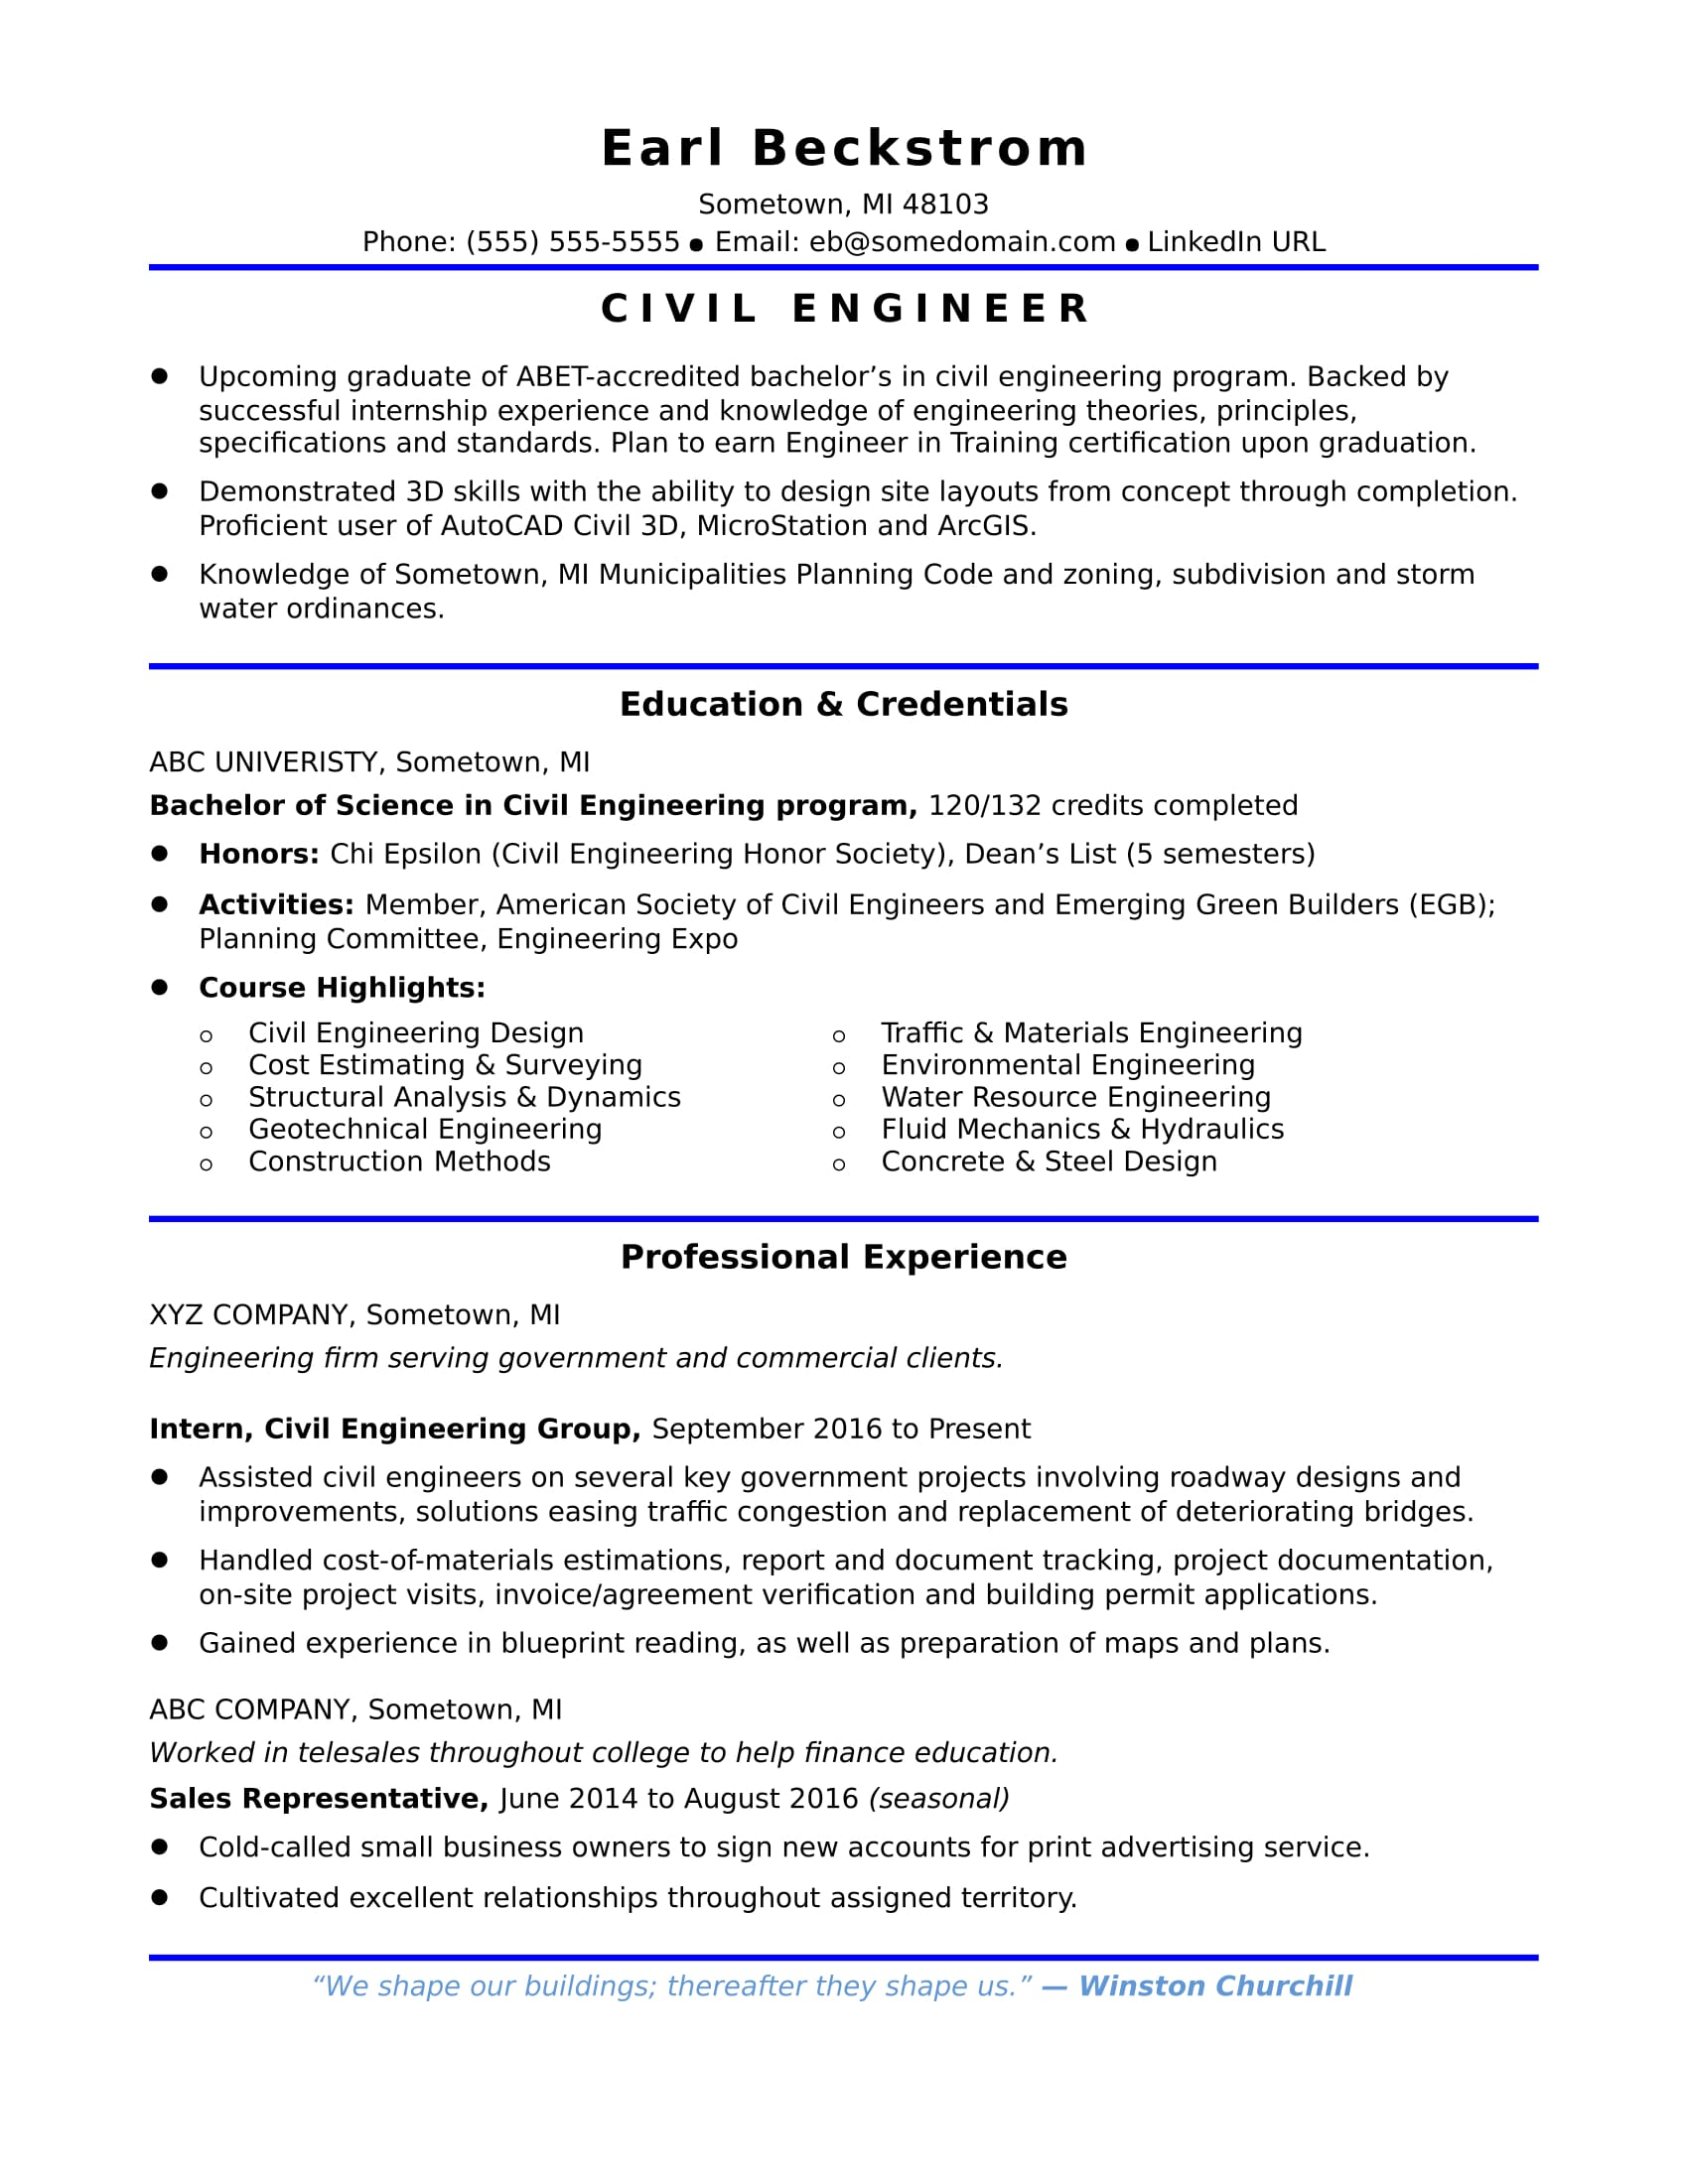 sample resume for an entry level civil engineer monster engineering format dietitian Resume Engineering Resume Format